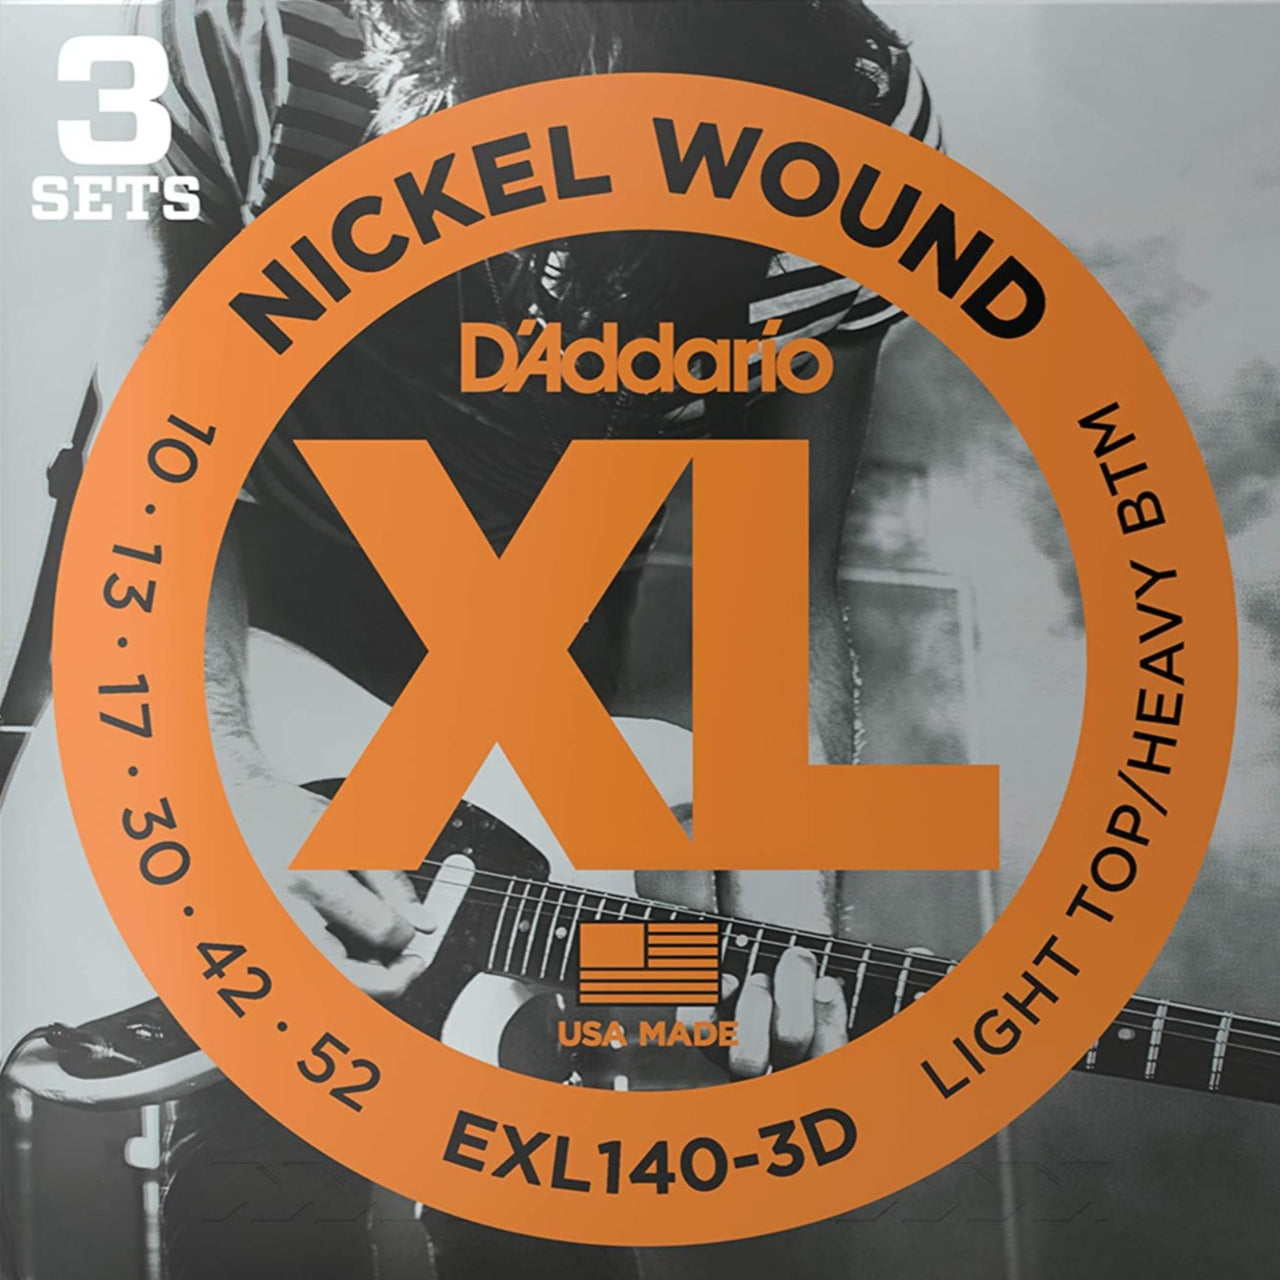 D'Addario EXL140-3D XL Electric Guitar Strings - Light Top/Heavy Bottom - 10-52 - 3 Pack